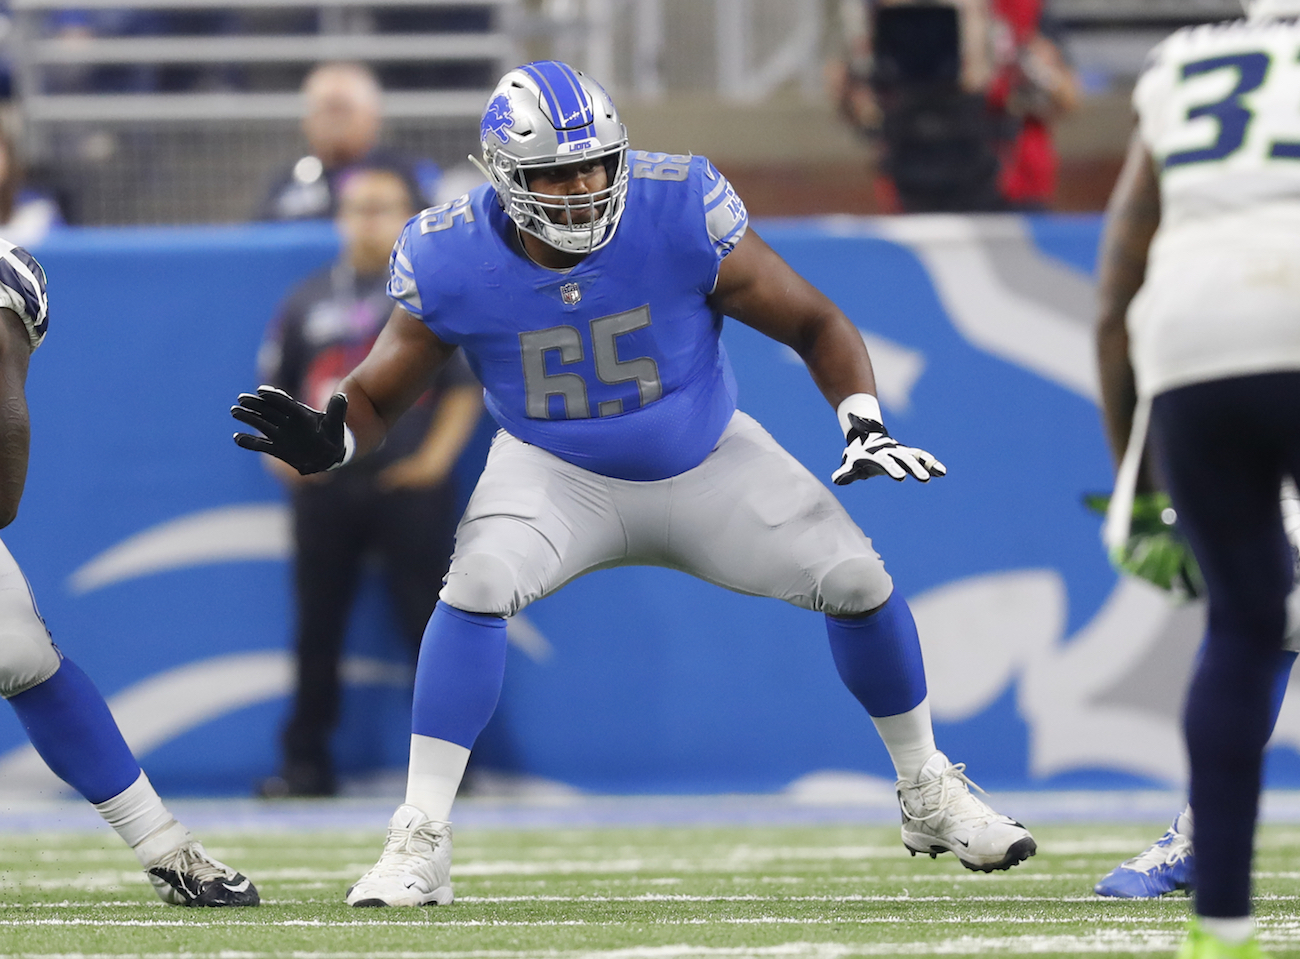 Lions rookie OT Tyrell Crosby will make first career start Sunday -  mlive.com